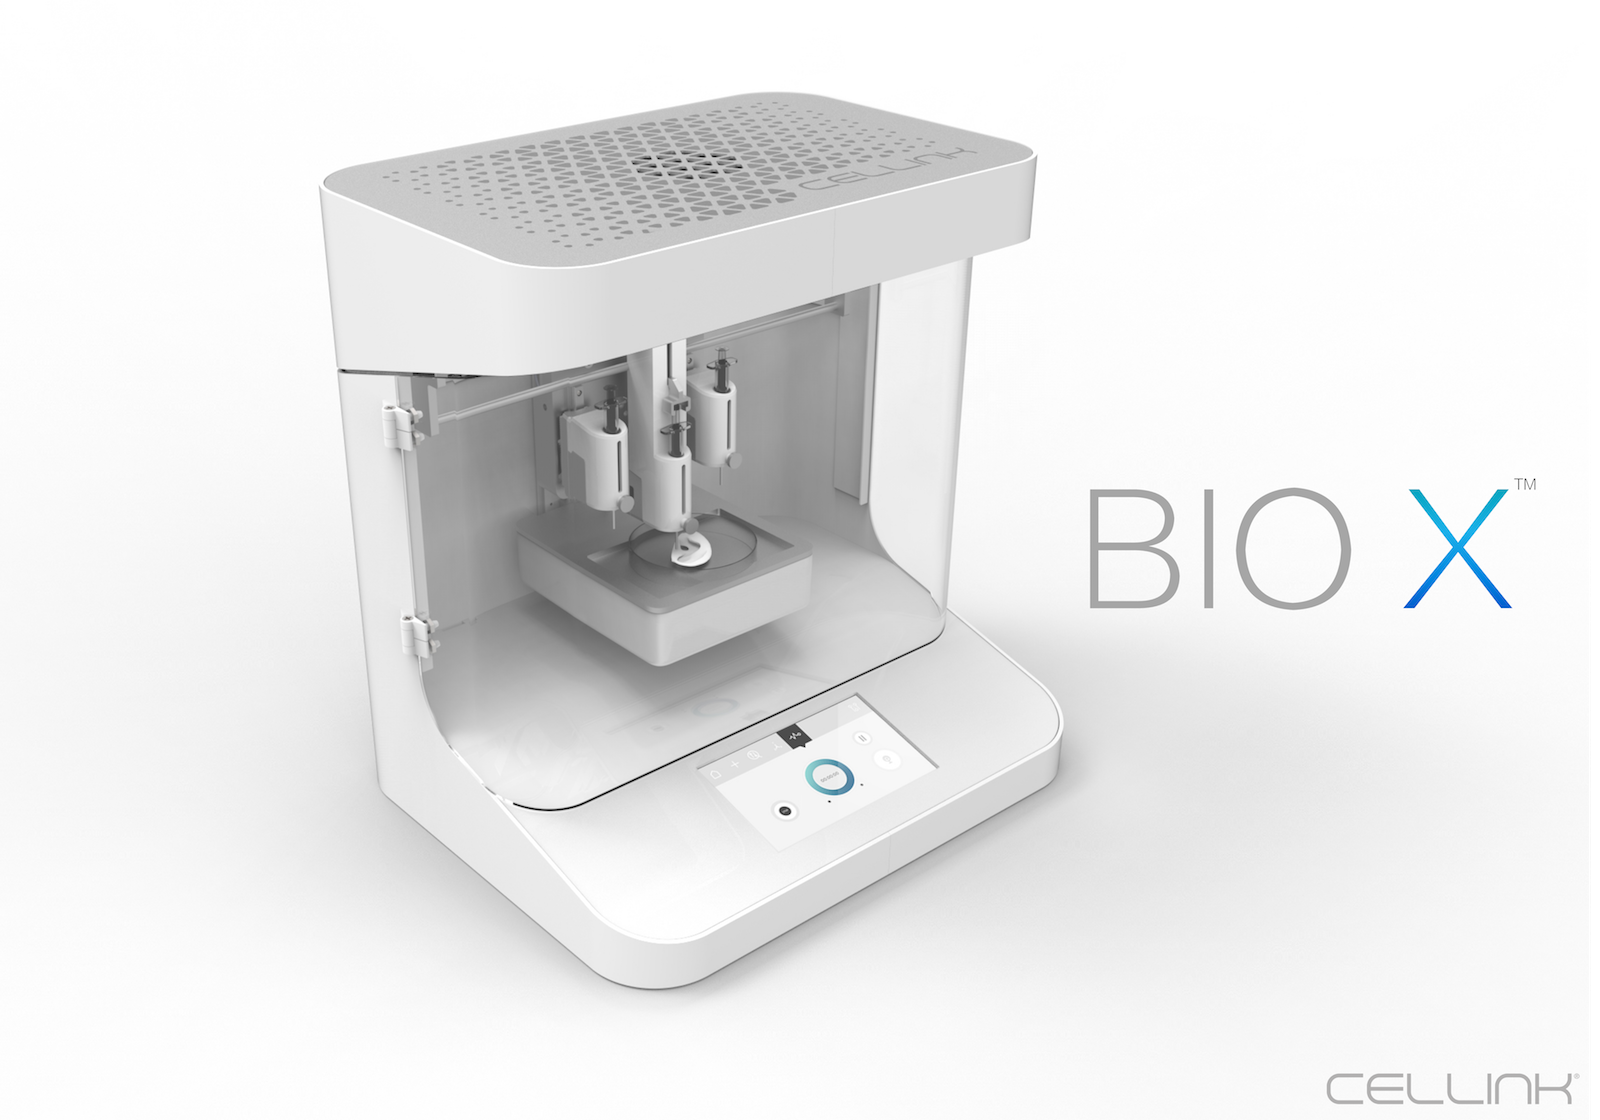 The BIO X 3D printer. Image via CELLINK.